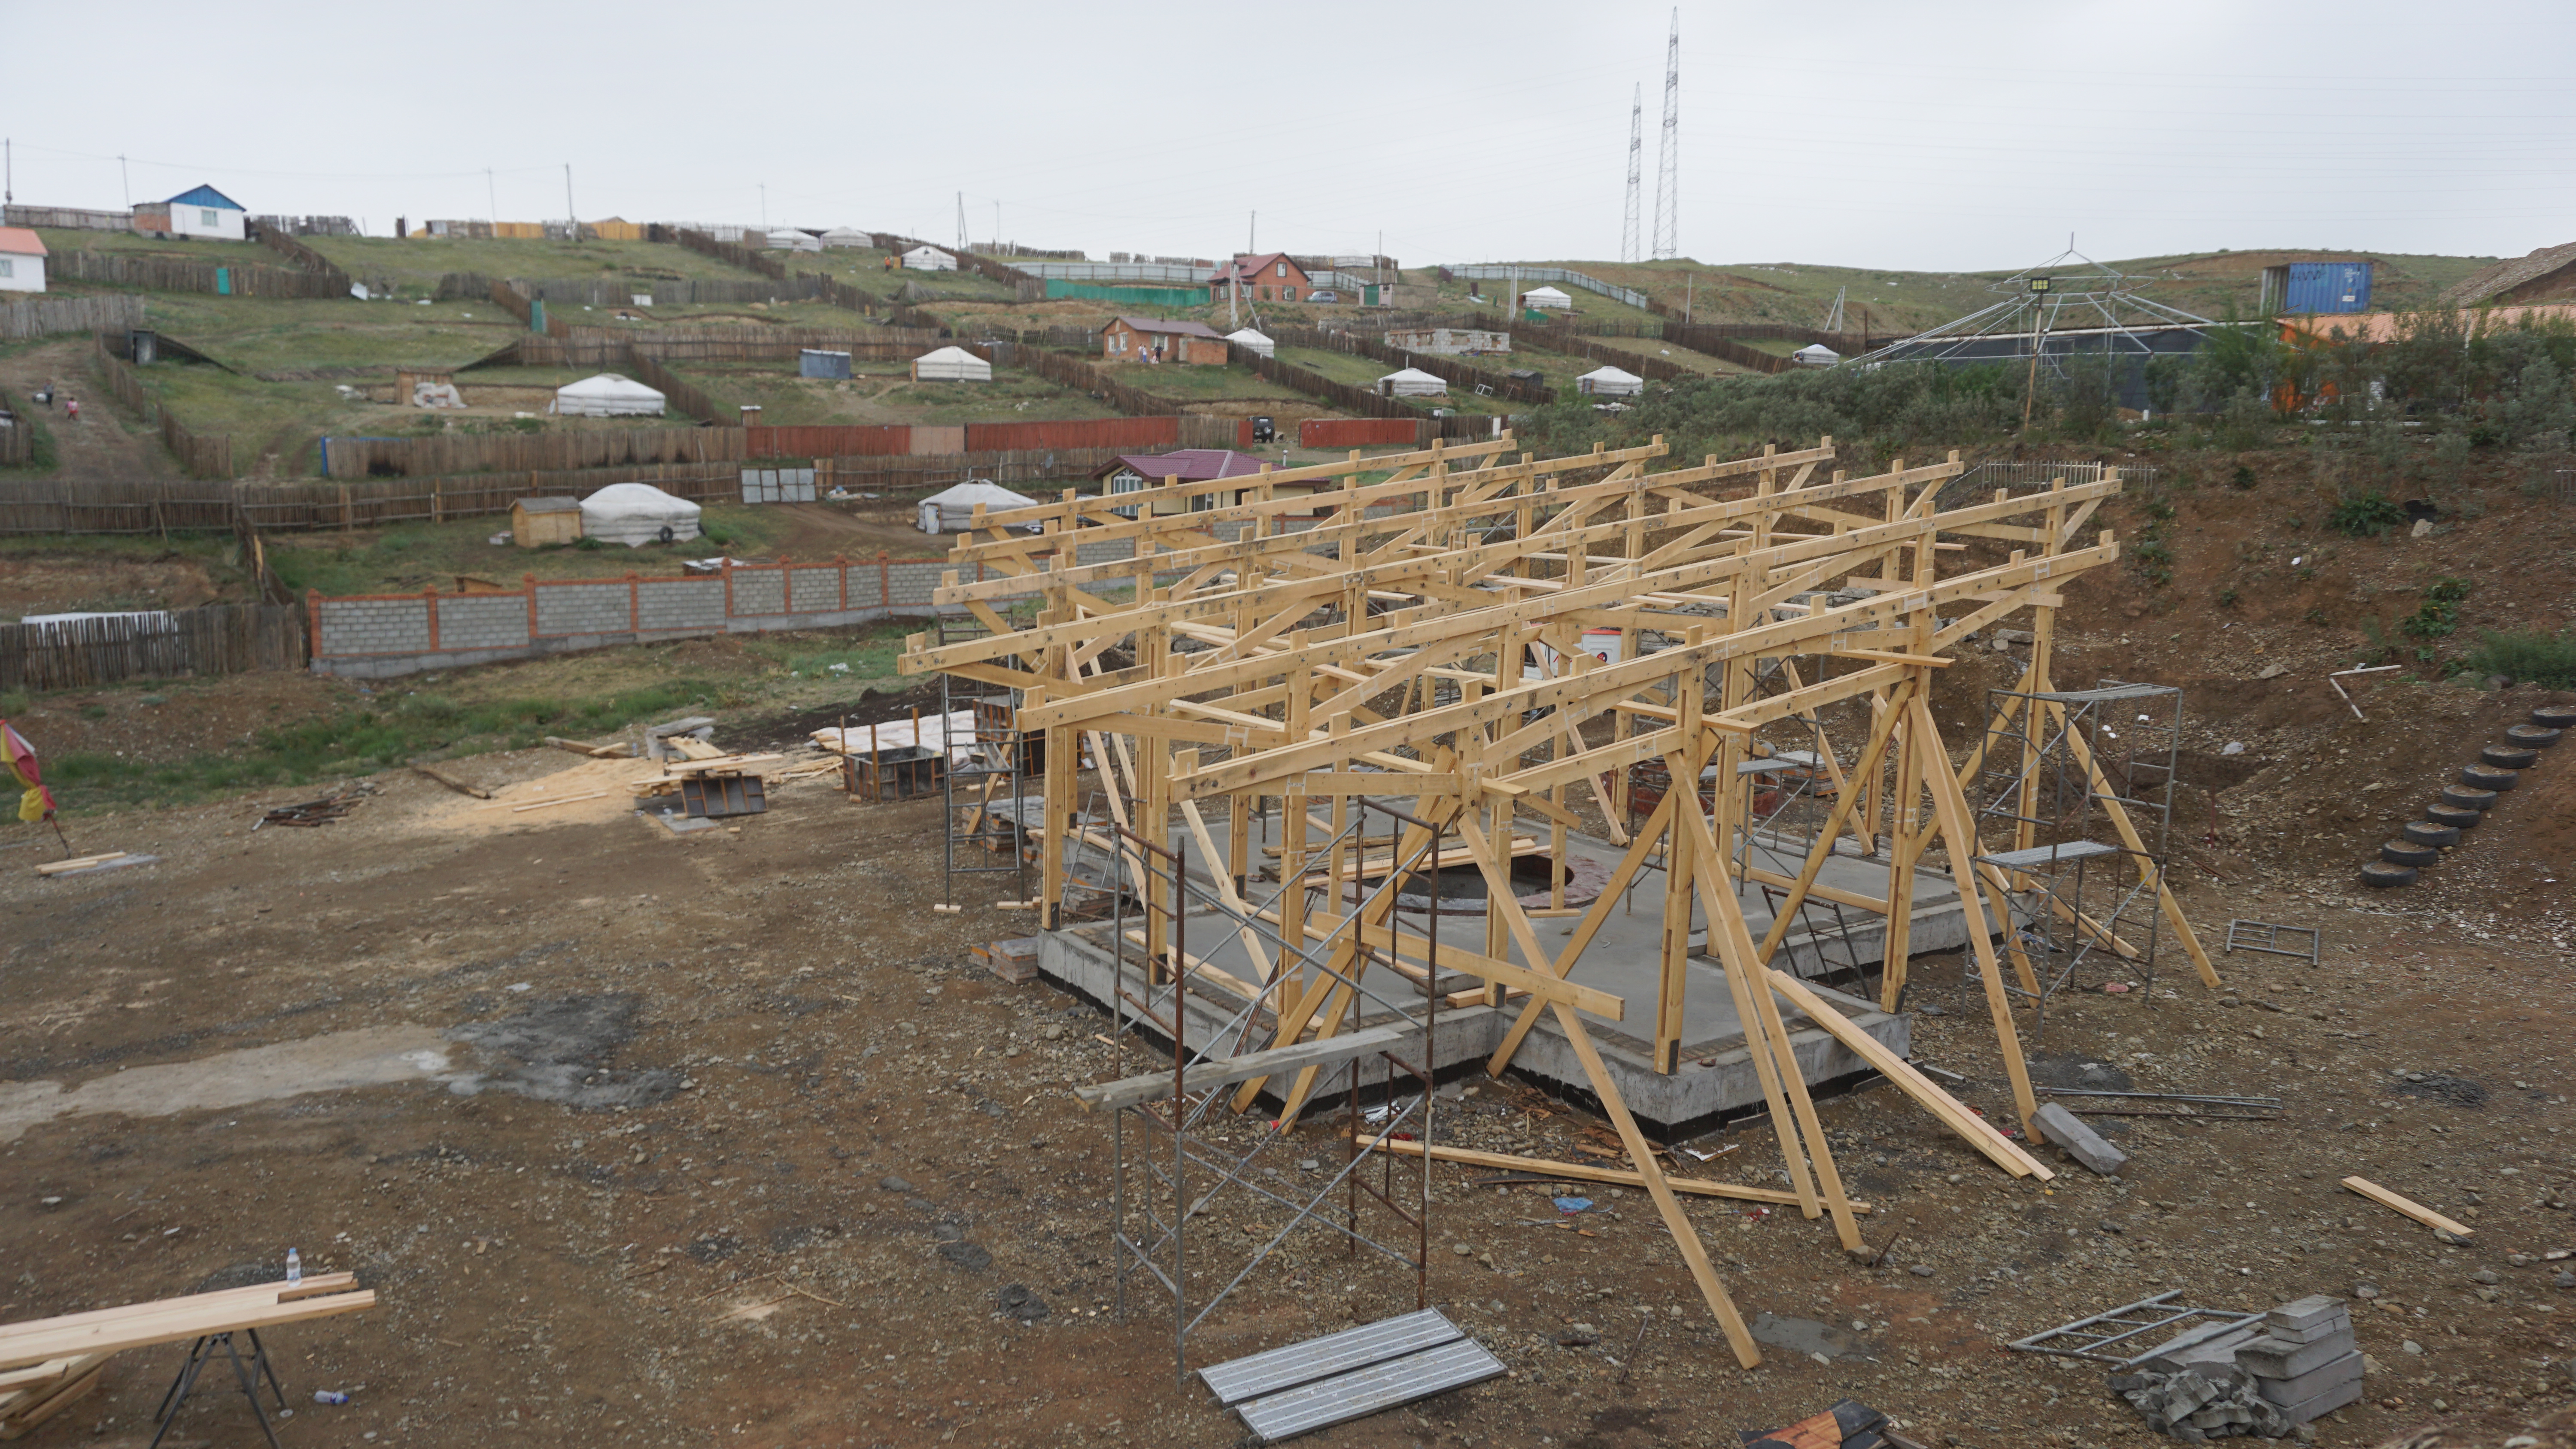 Poured concrete base with a laticced wooden framework roof mid-construction. Individual ger plots can be seen on the hills in the distance.